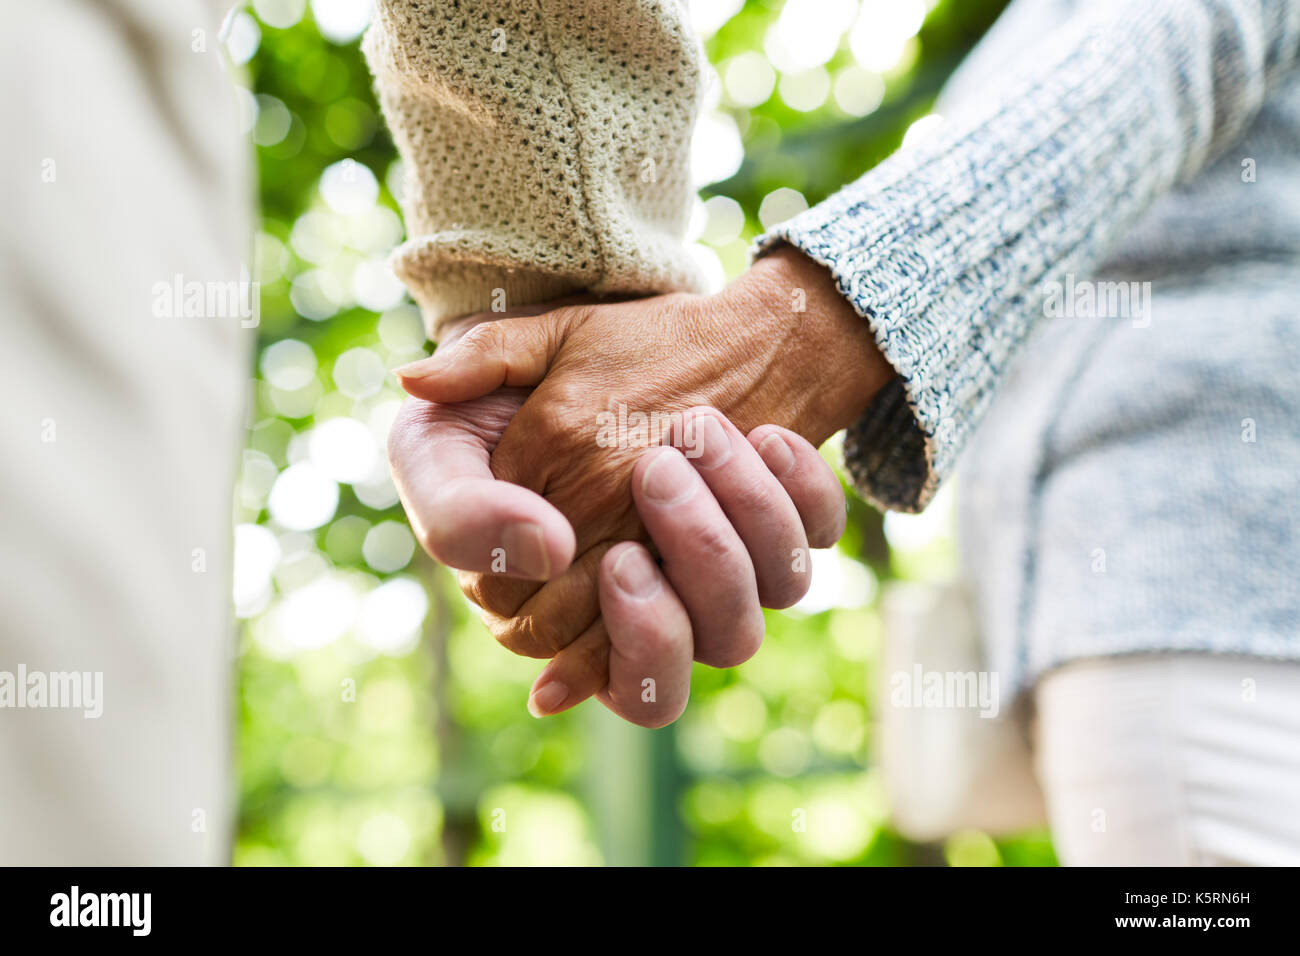 Affection - Stock Image